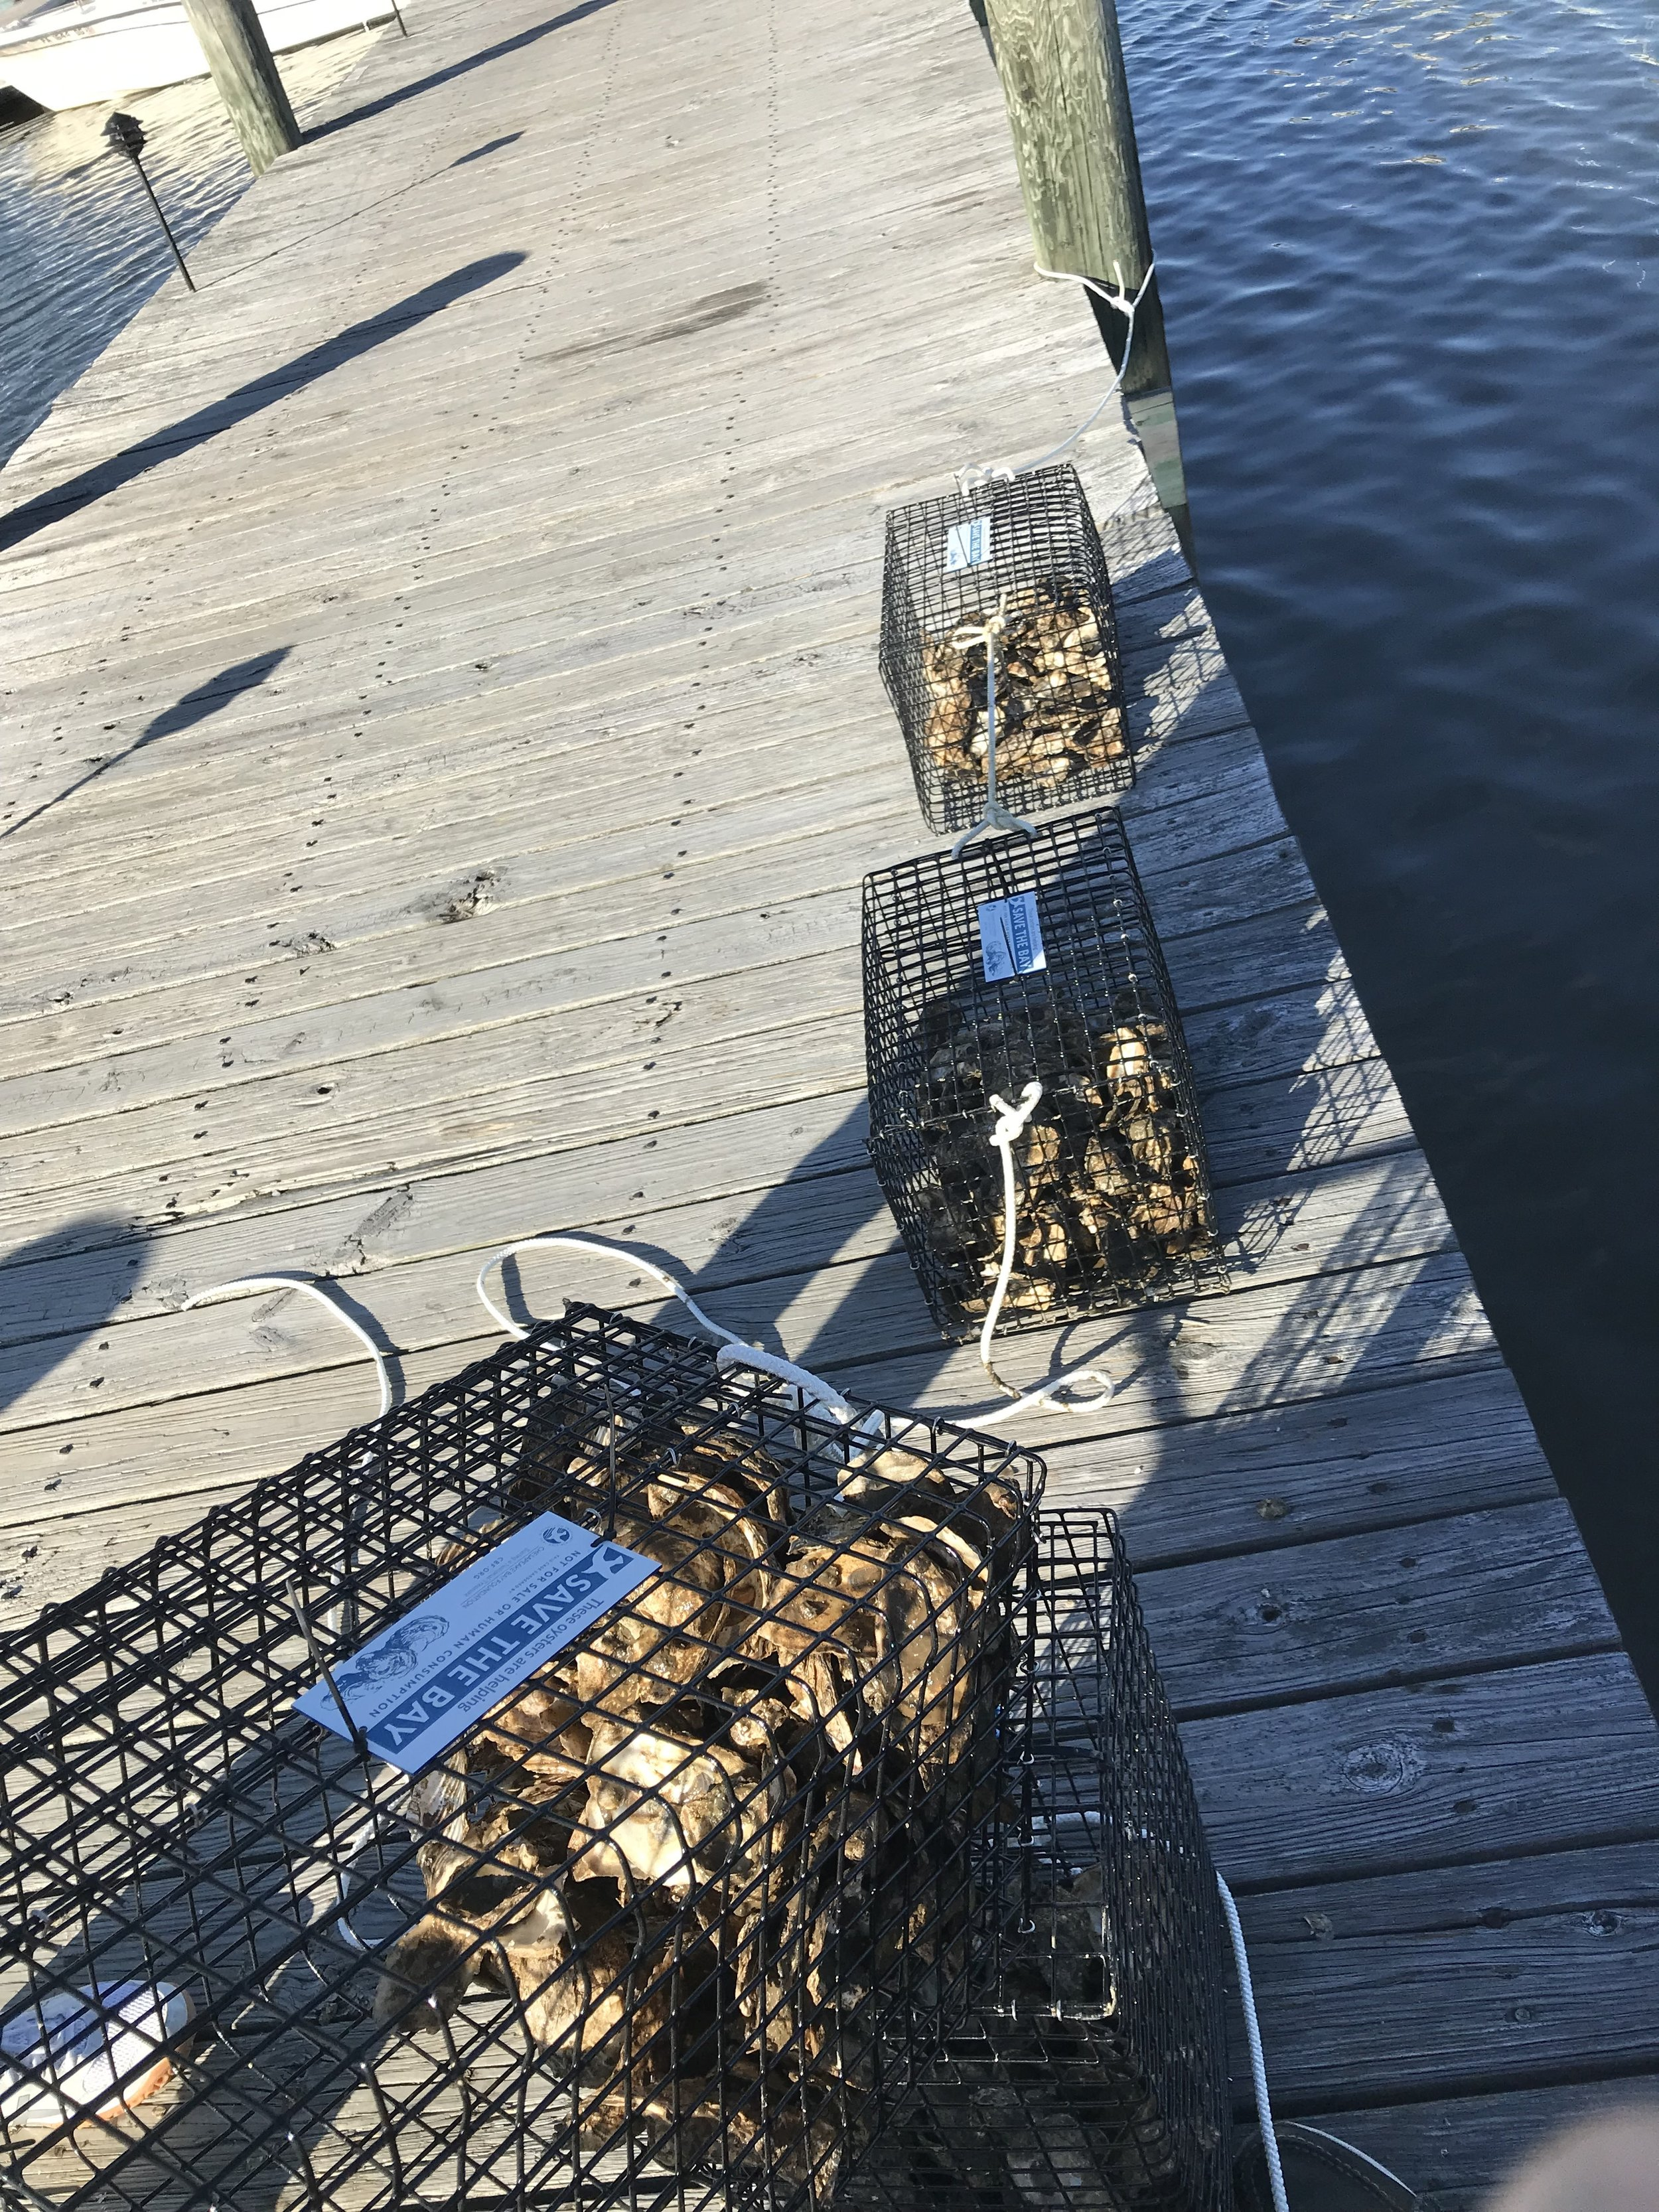 Oyster Cages for Farming.jpg